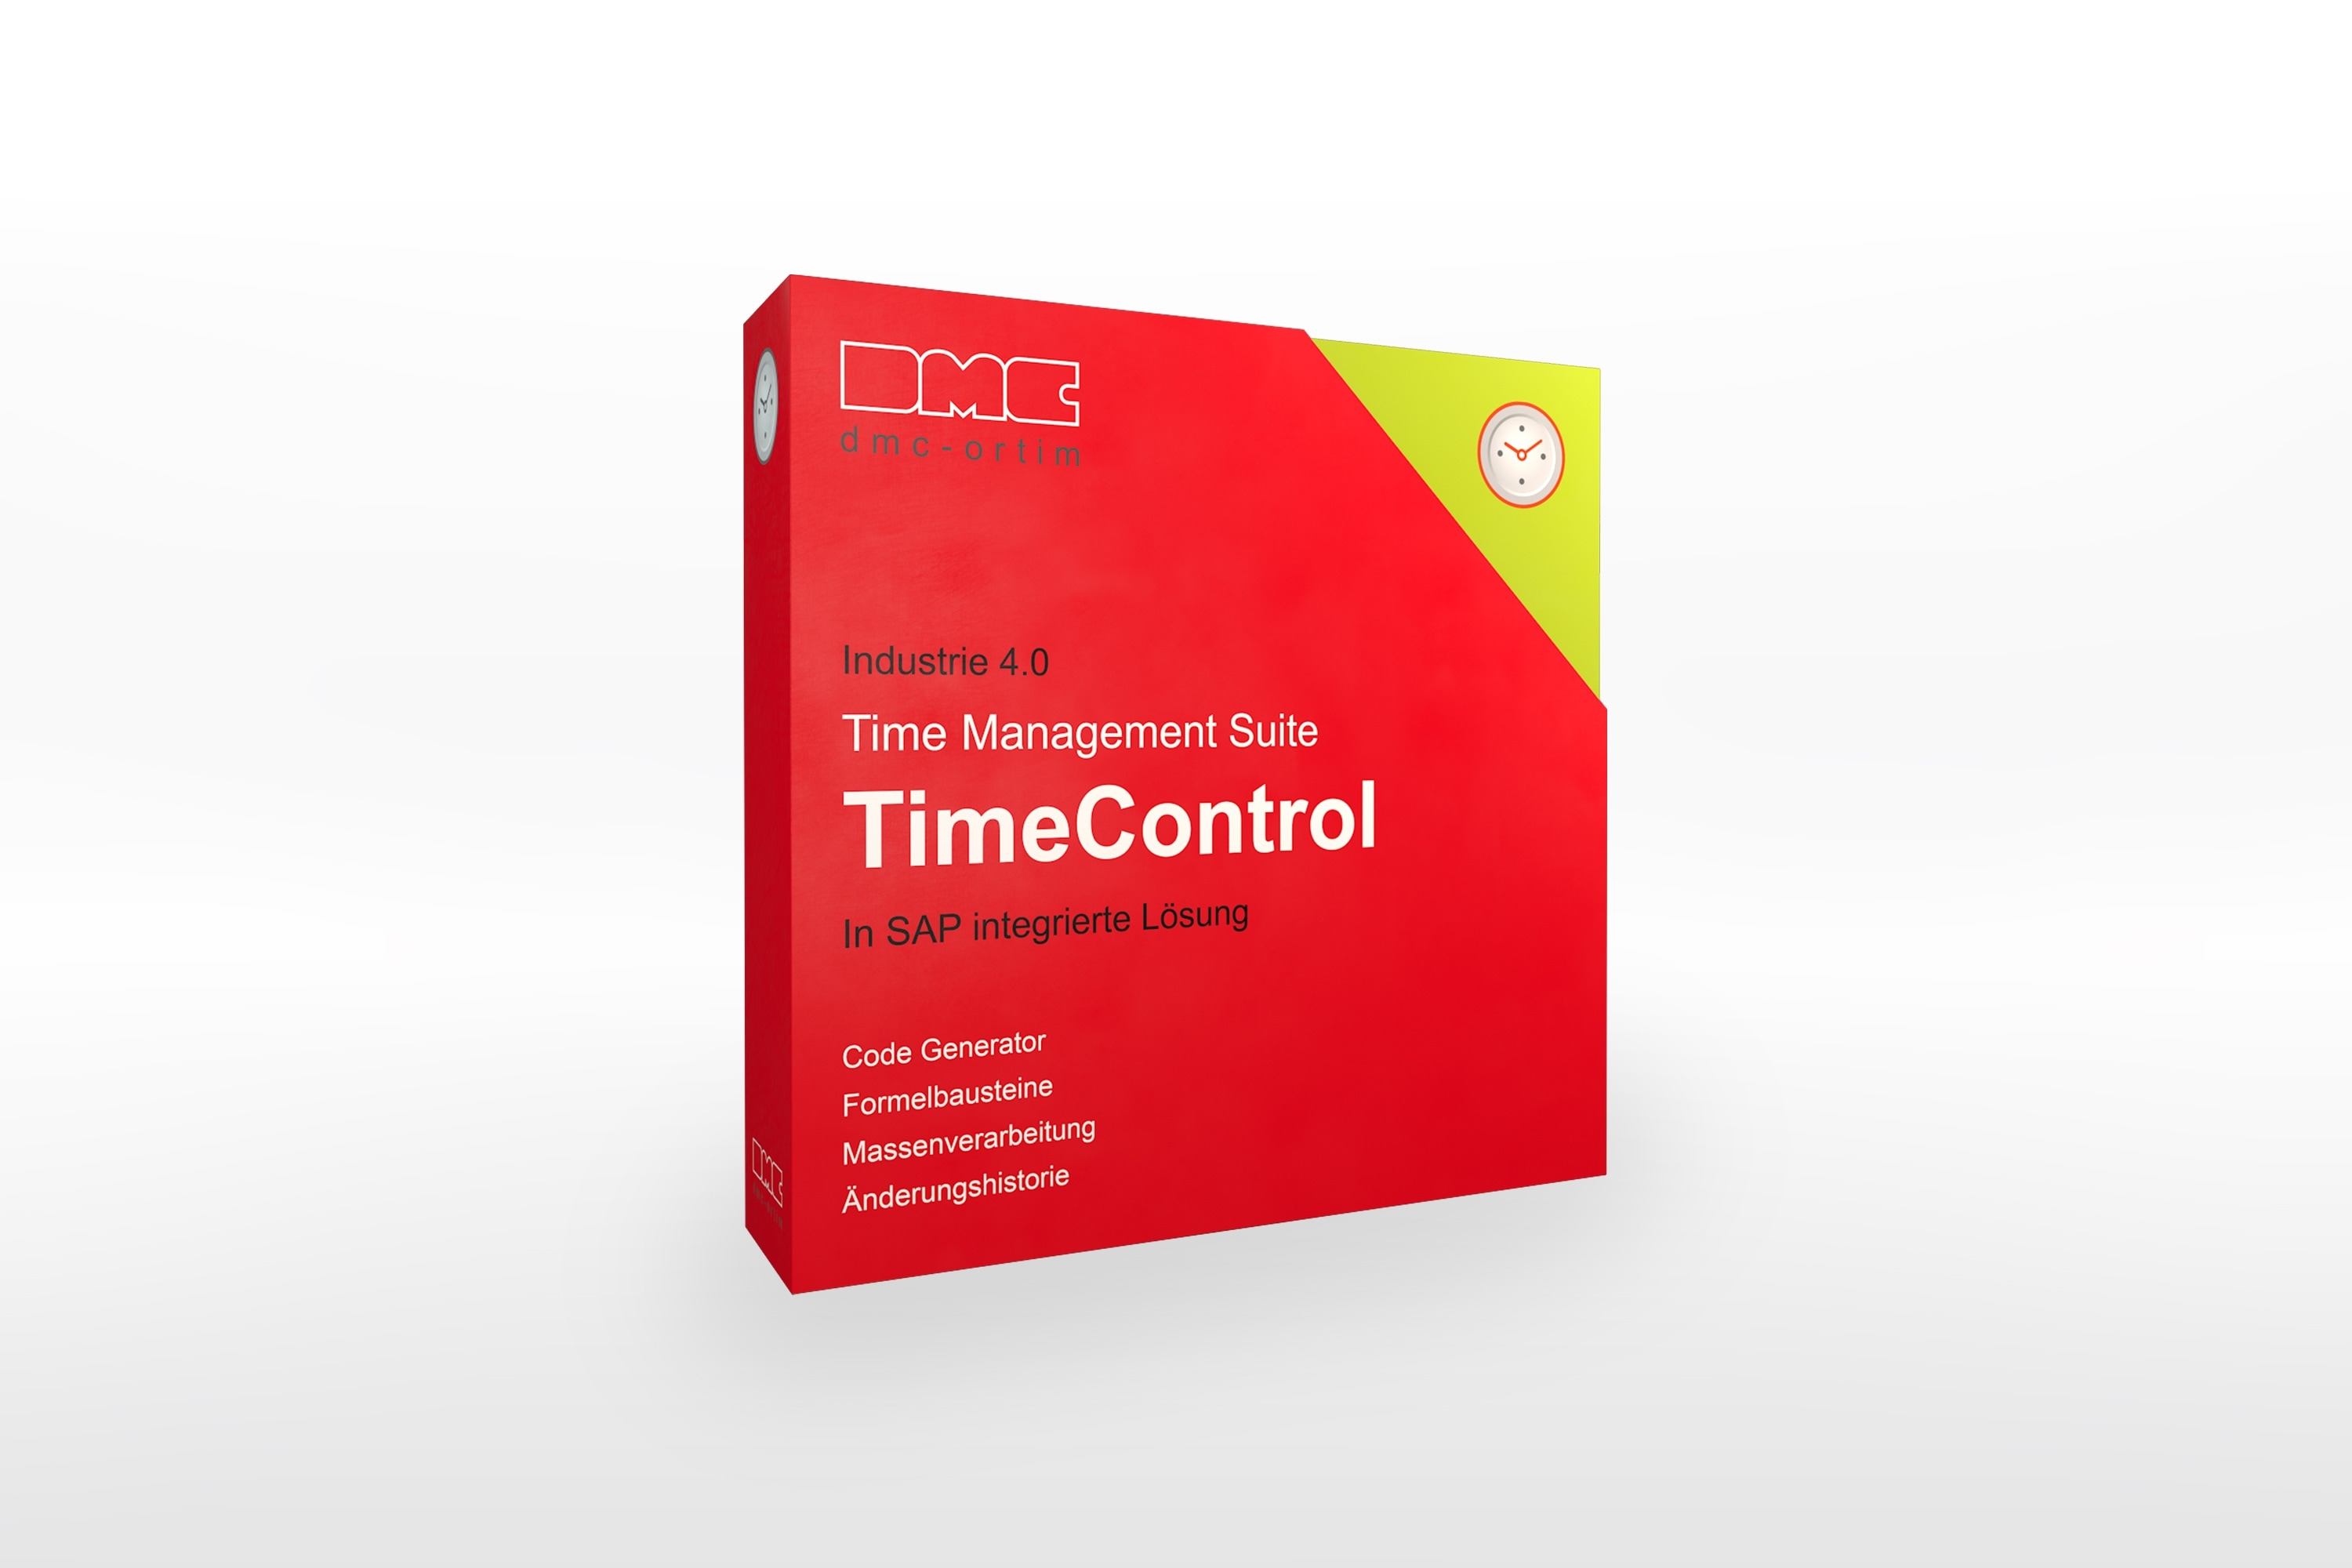 maxfath-dmc-group-muenchen-redesign-packaging-capp-knowledge-time-control